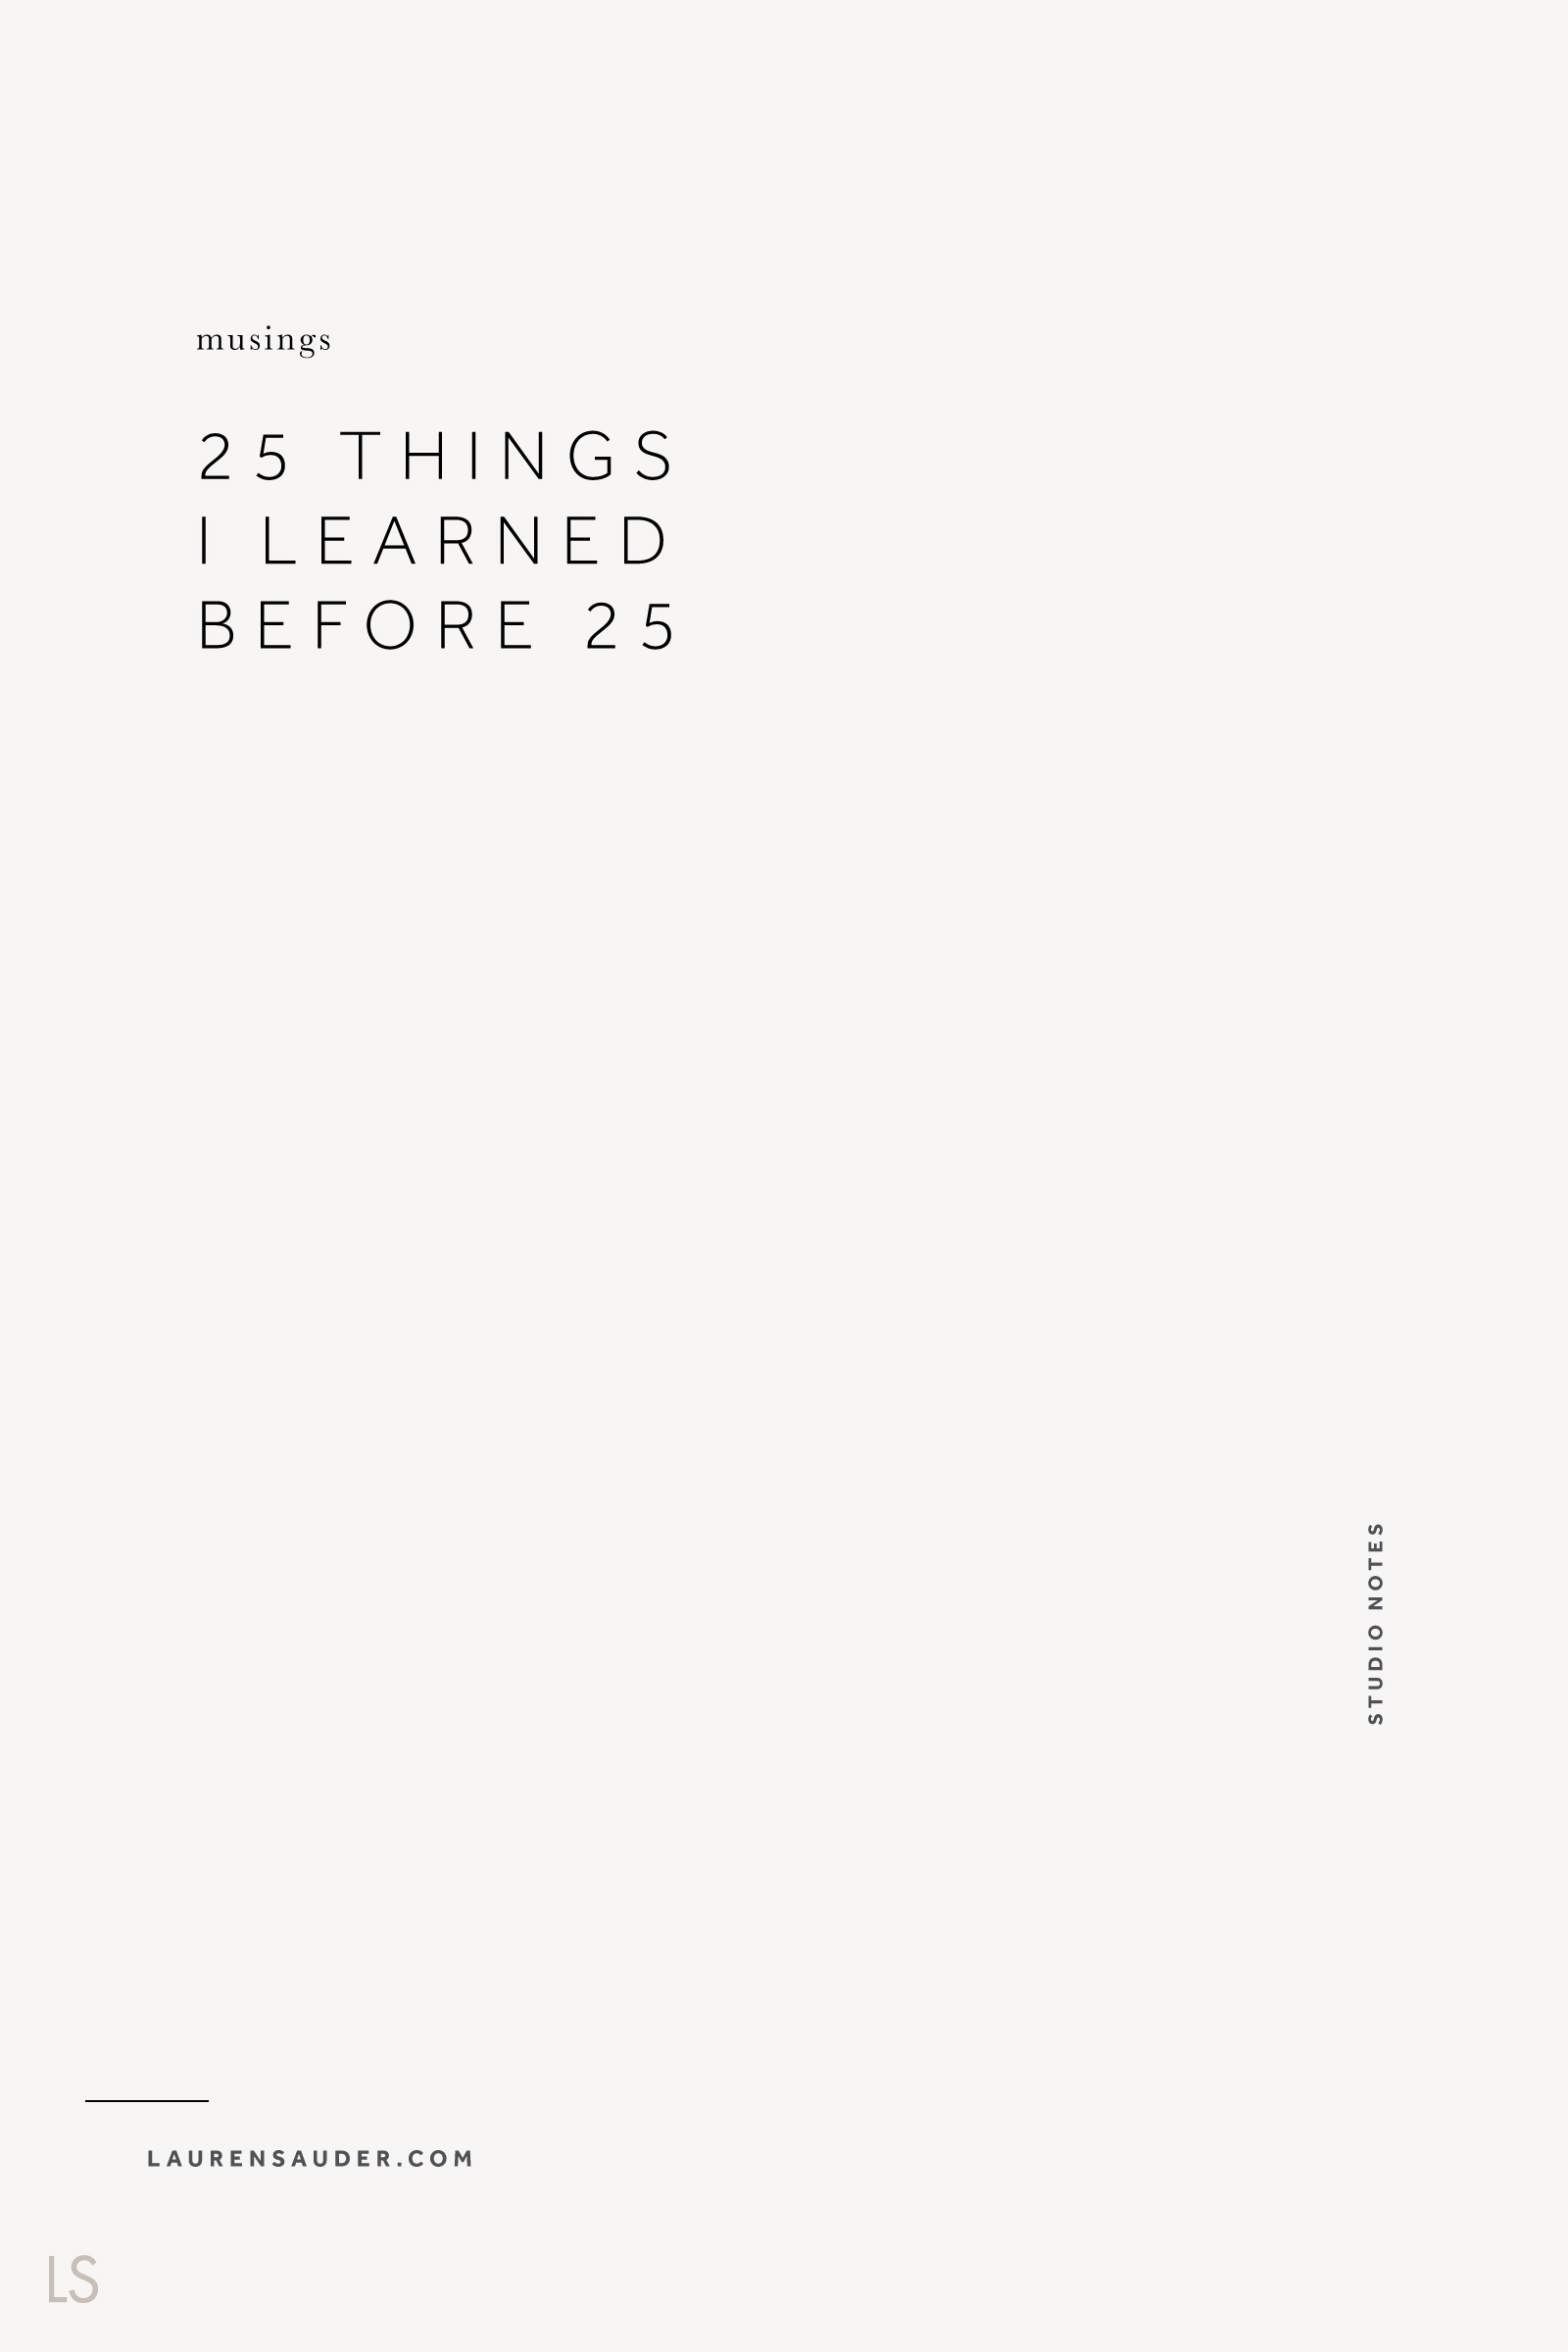 25 Things I Learned Before 25 - Lauren Sauder #reflection, self reflection, self confidence, musings